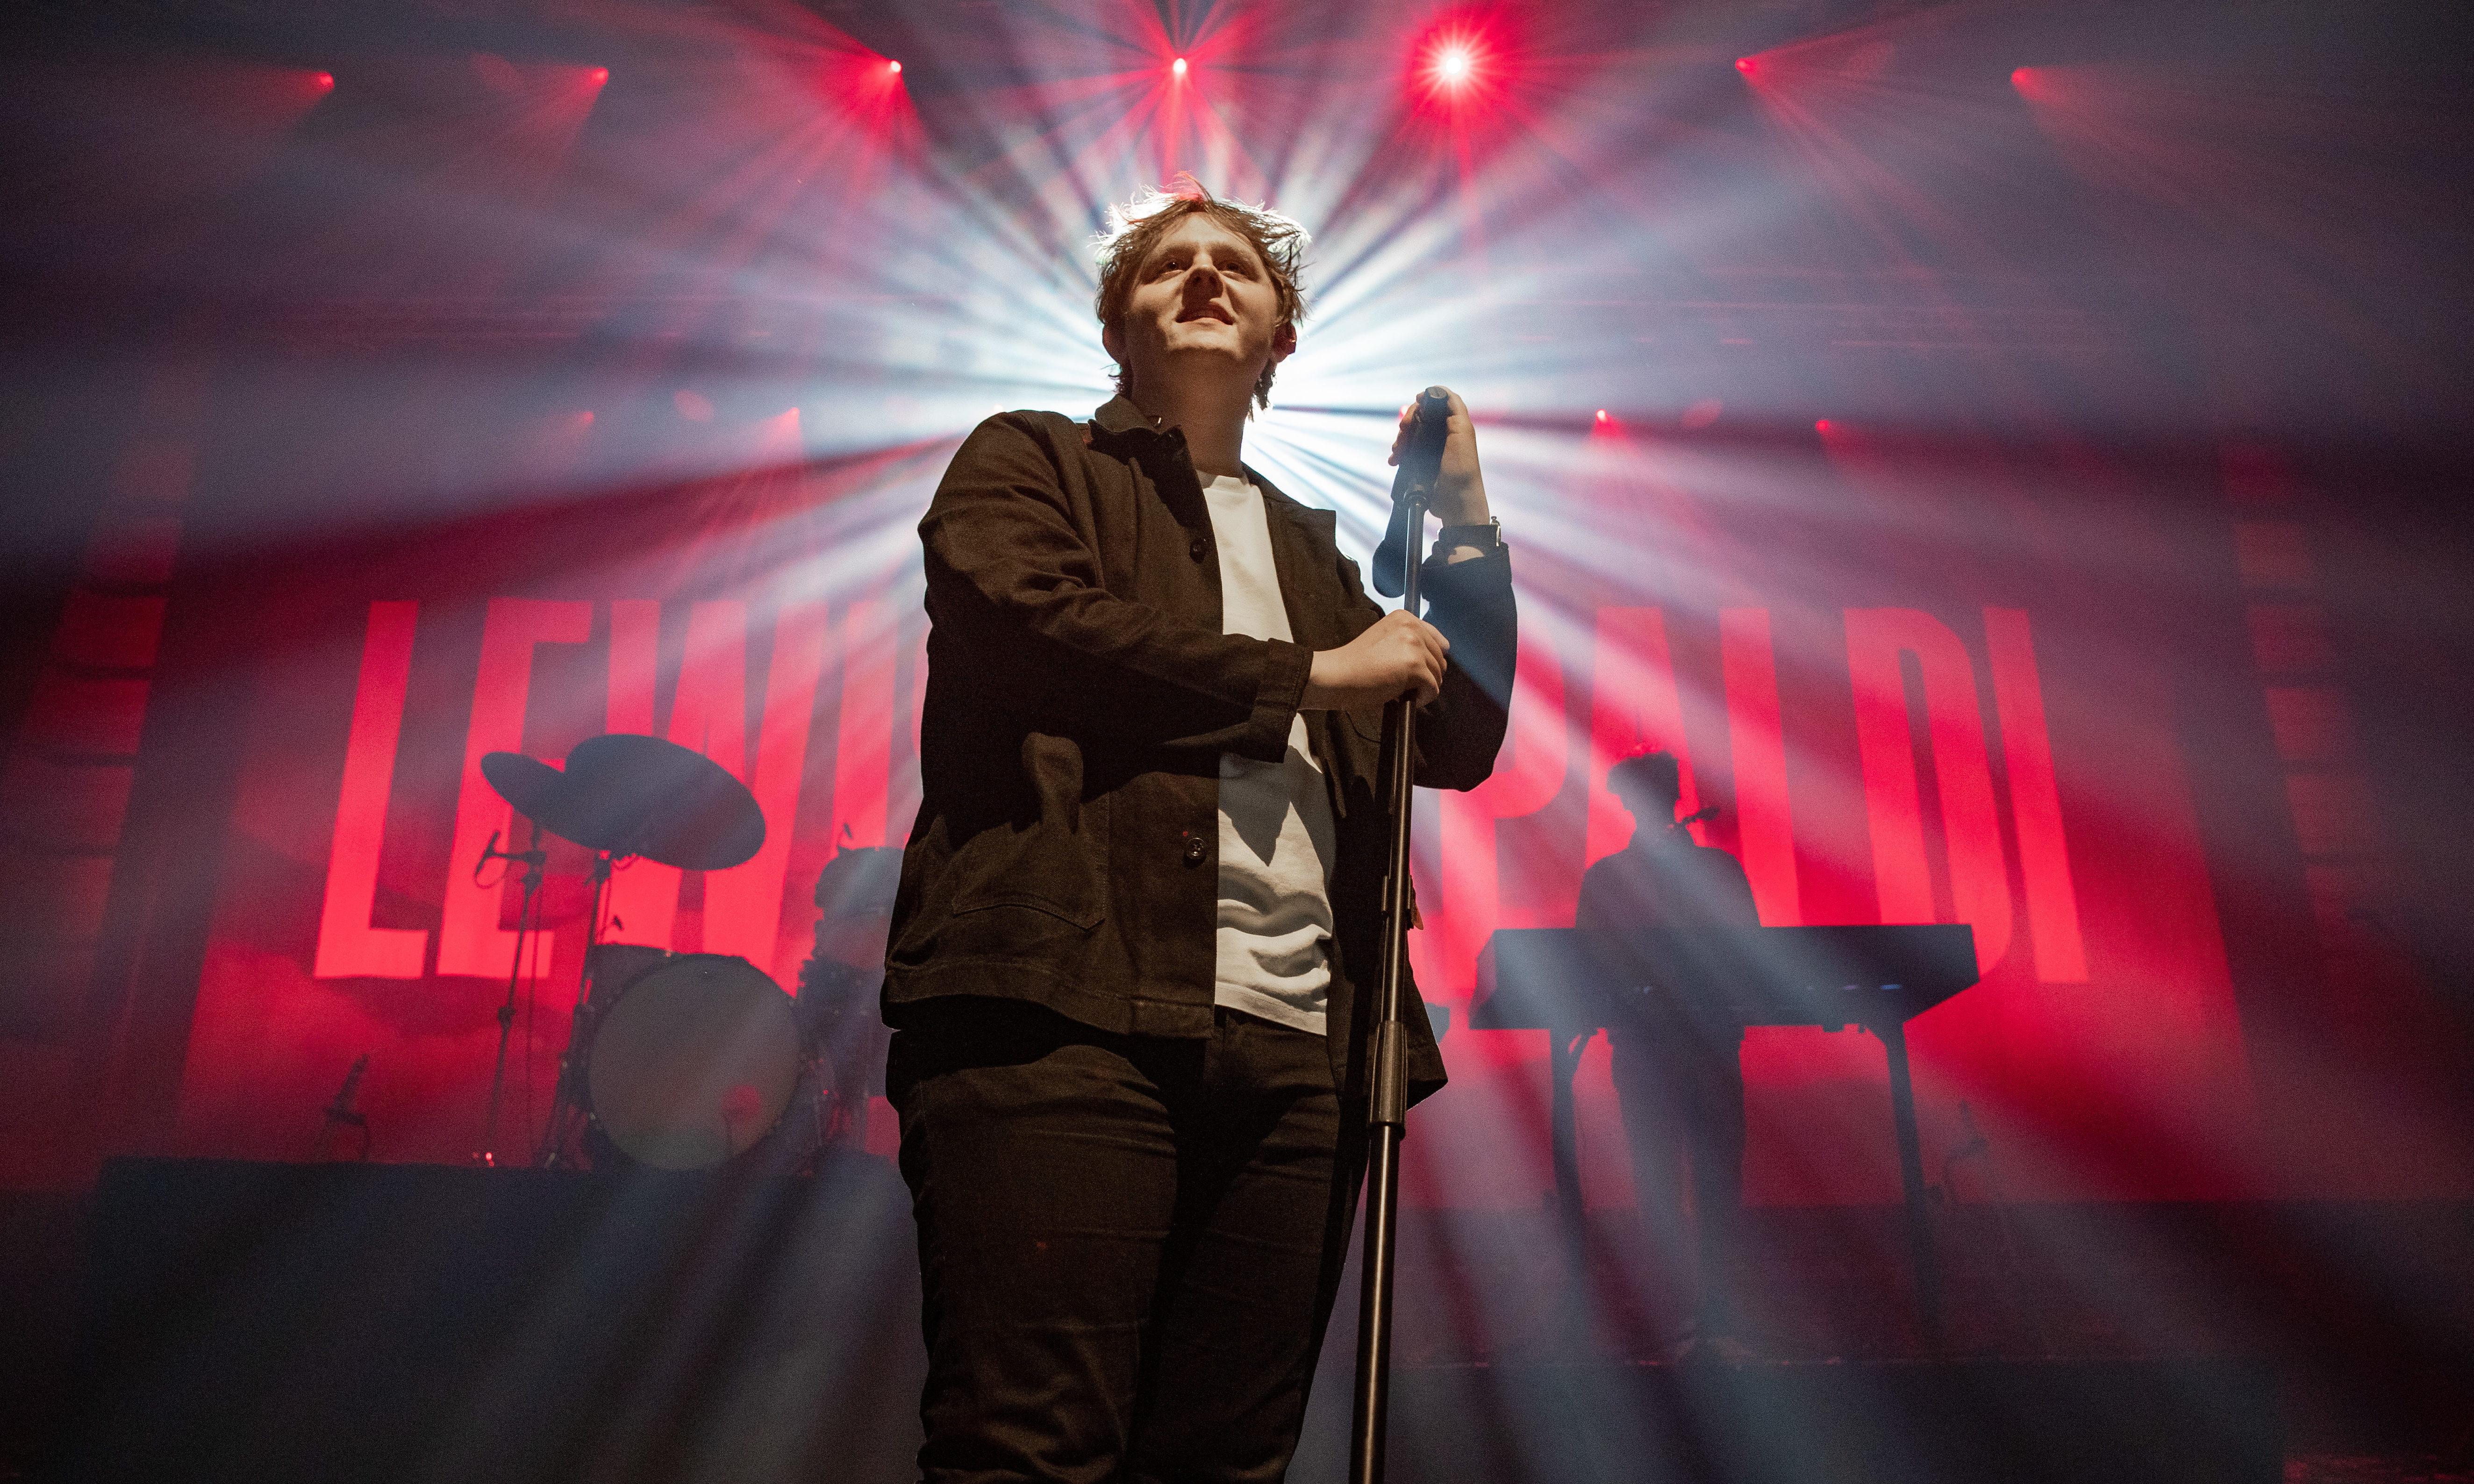 Lewis Capaldi playing Perth Concert Hall's Gannochy Trust Auditorium as part of Perth Festival of the Arts.